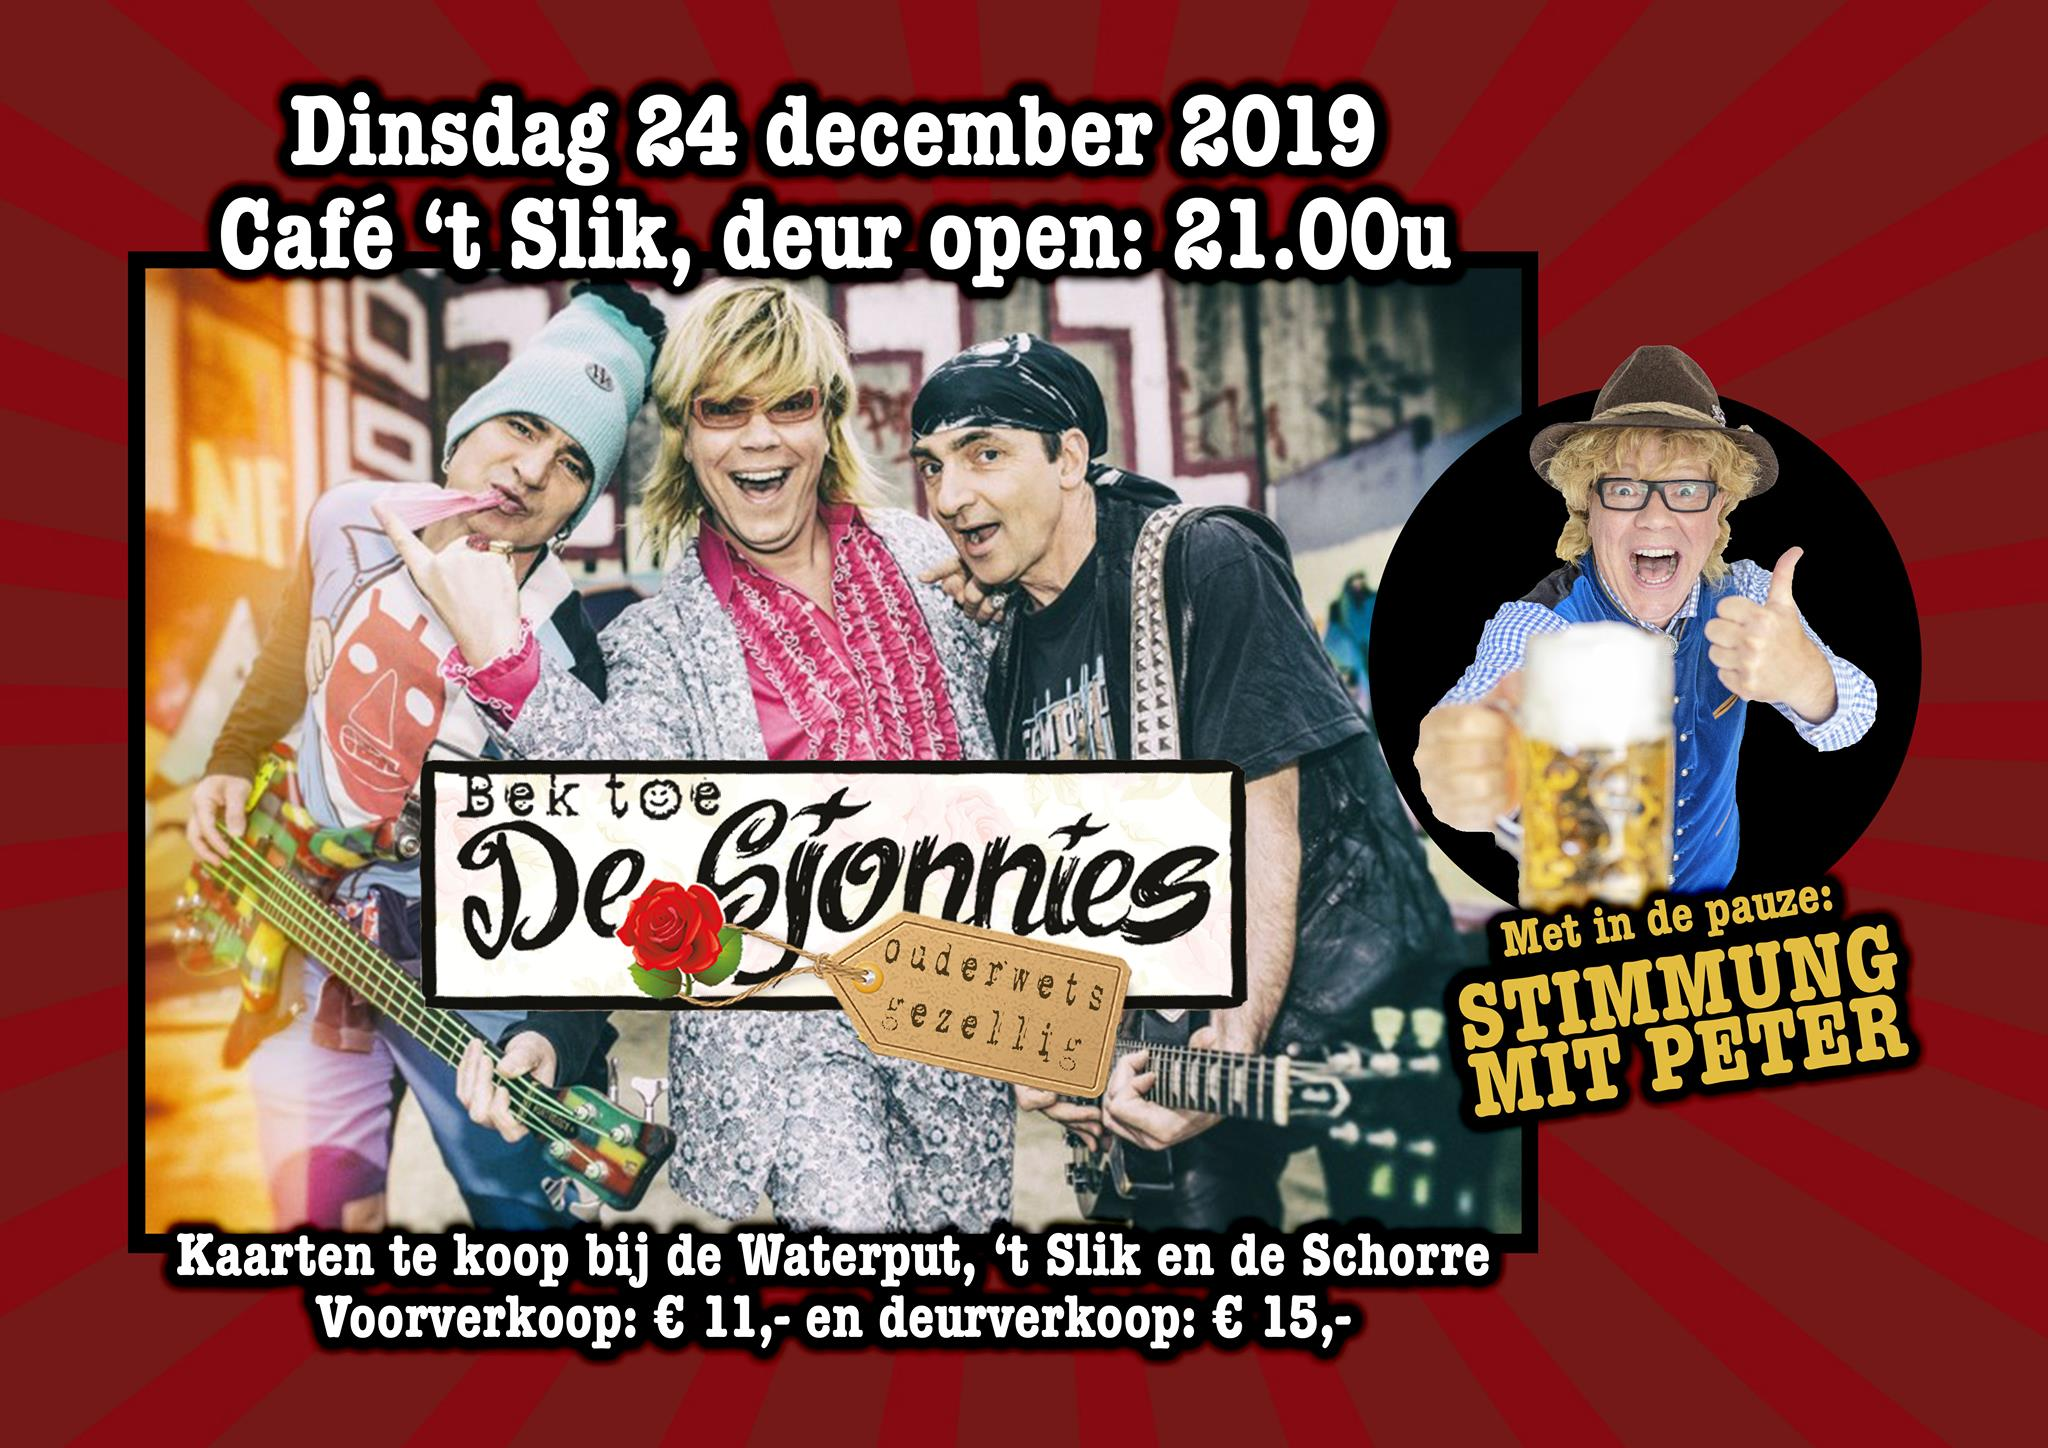 de sjonnies cafe 't slik